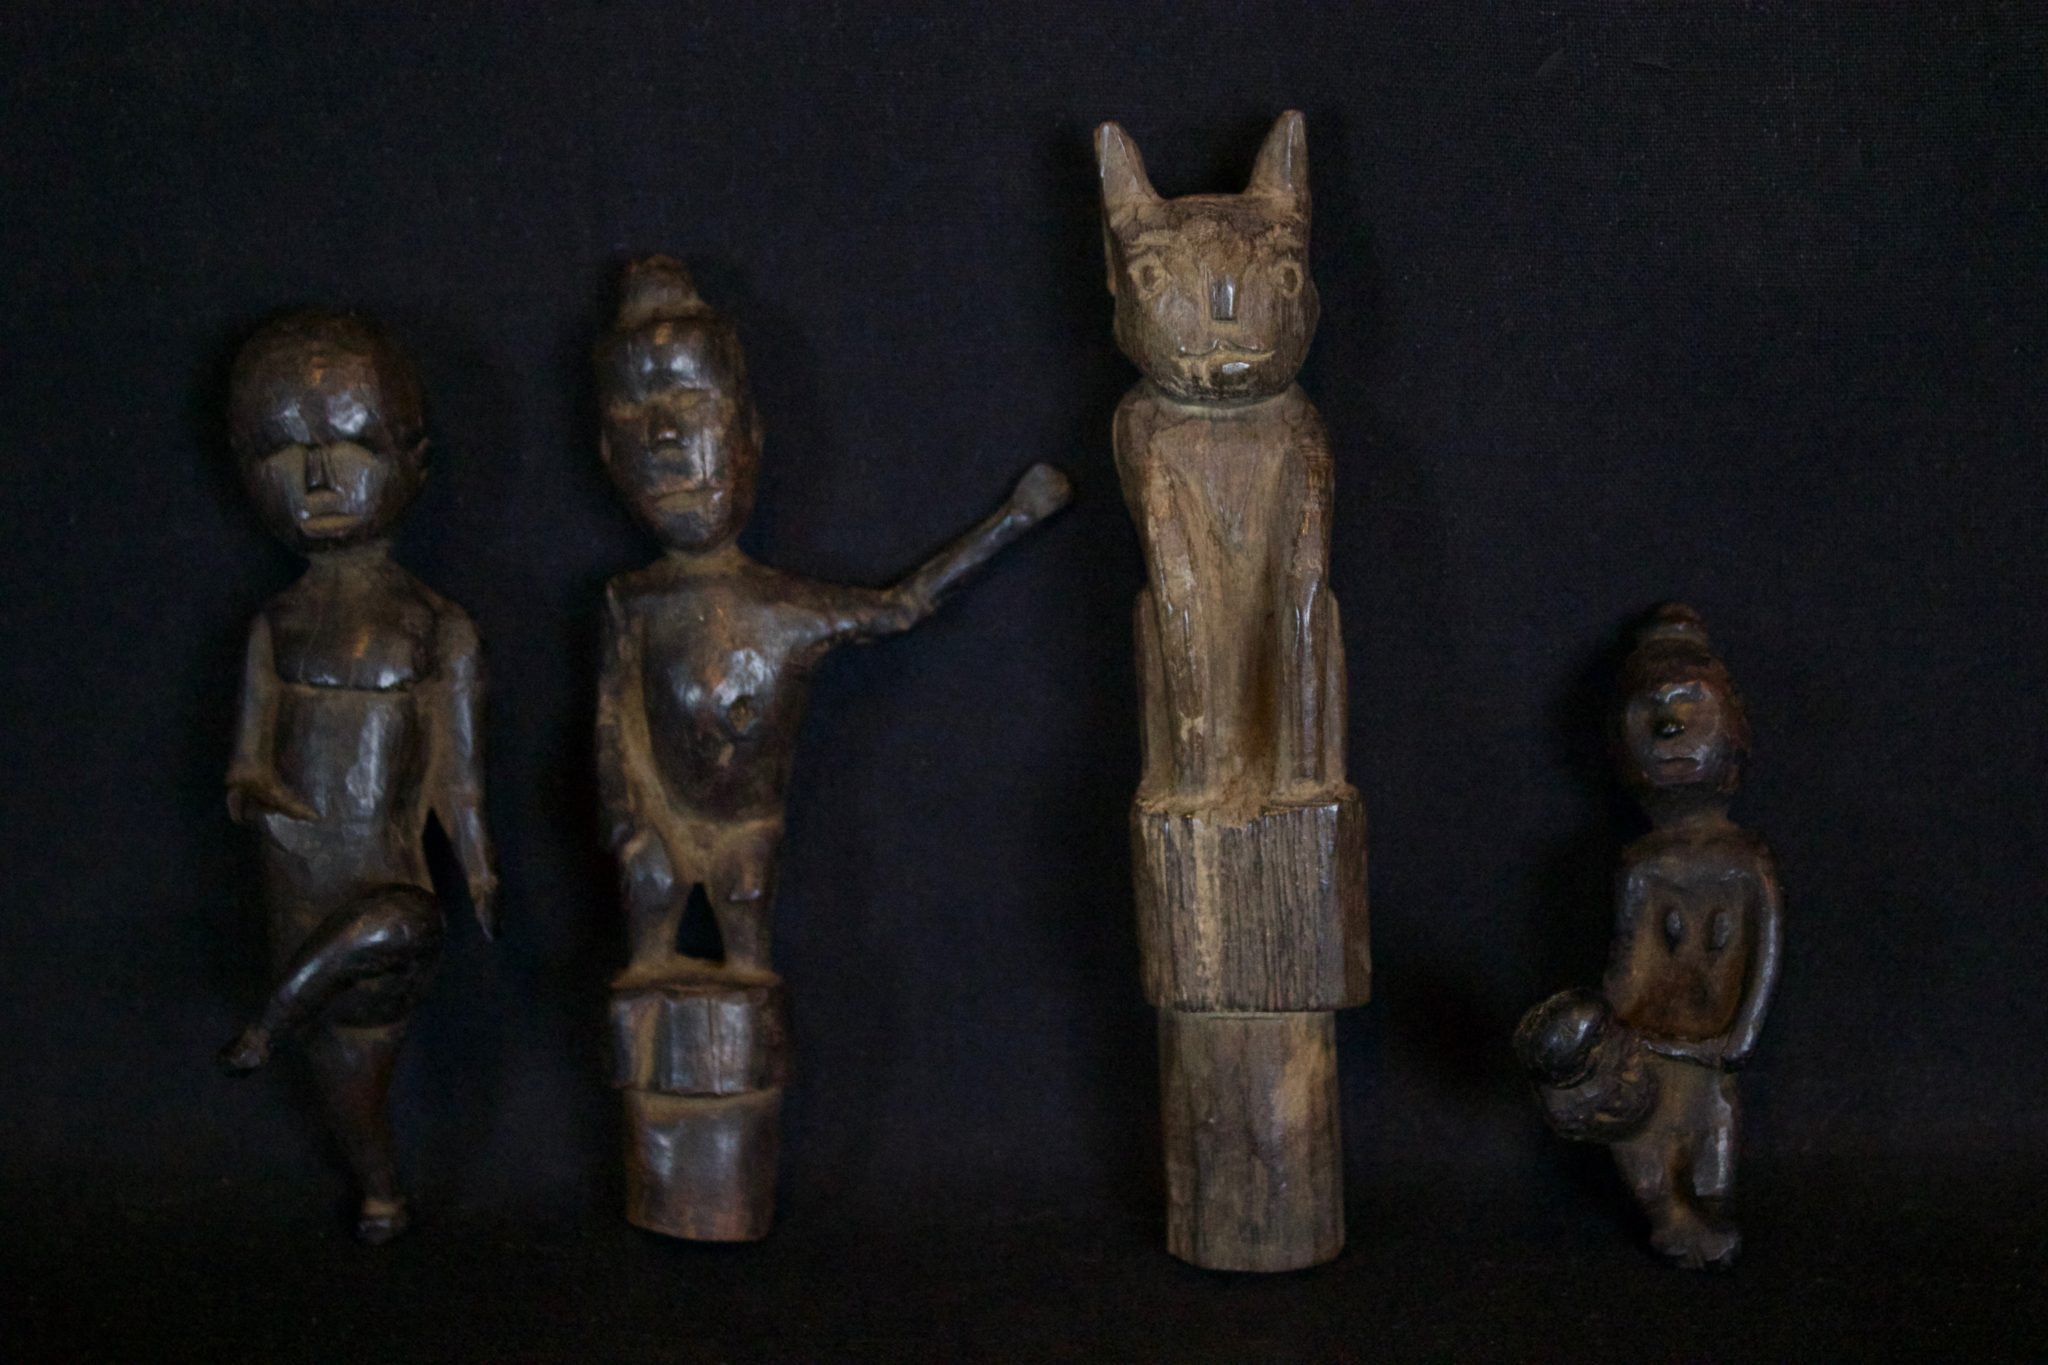 """Shaman's Amulet/Talisman Figures for Healing, Kalimantan, Borneo, Indonesia, Dayak tribe. Dimensions/Info Left to Right: (Early 20th c. Wood, 4 ¾"""" x 1 ½"""" x 1 ½"""", $90.); (Late 19th to early 20th c, Wood, 5"""" x 2 ½"""" x 1 ½"""", $90.); (Mid 20th c, Wood, Stopper for shaman's medicine container, 5 ¾"""" x 1"""" x 1 ¼"""", $130.); ( Early 20th c. Wood, Used for healing a child, 3 ¼"""" x 1"""" x 1 ¾"""", $85.)"""